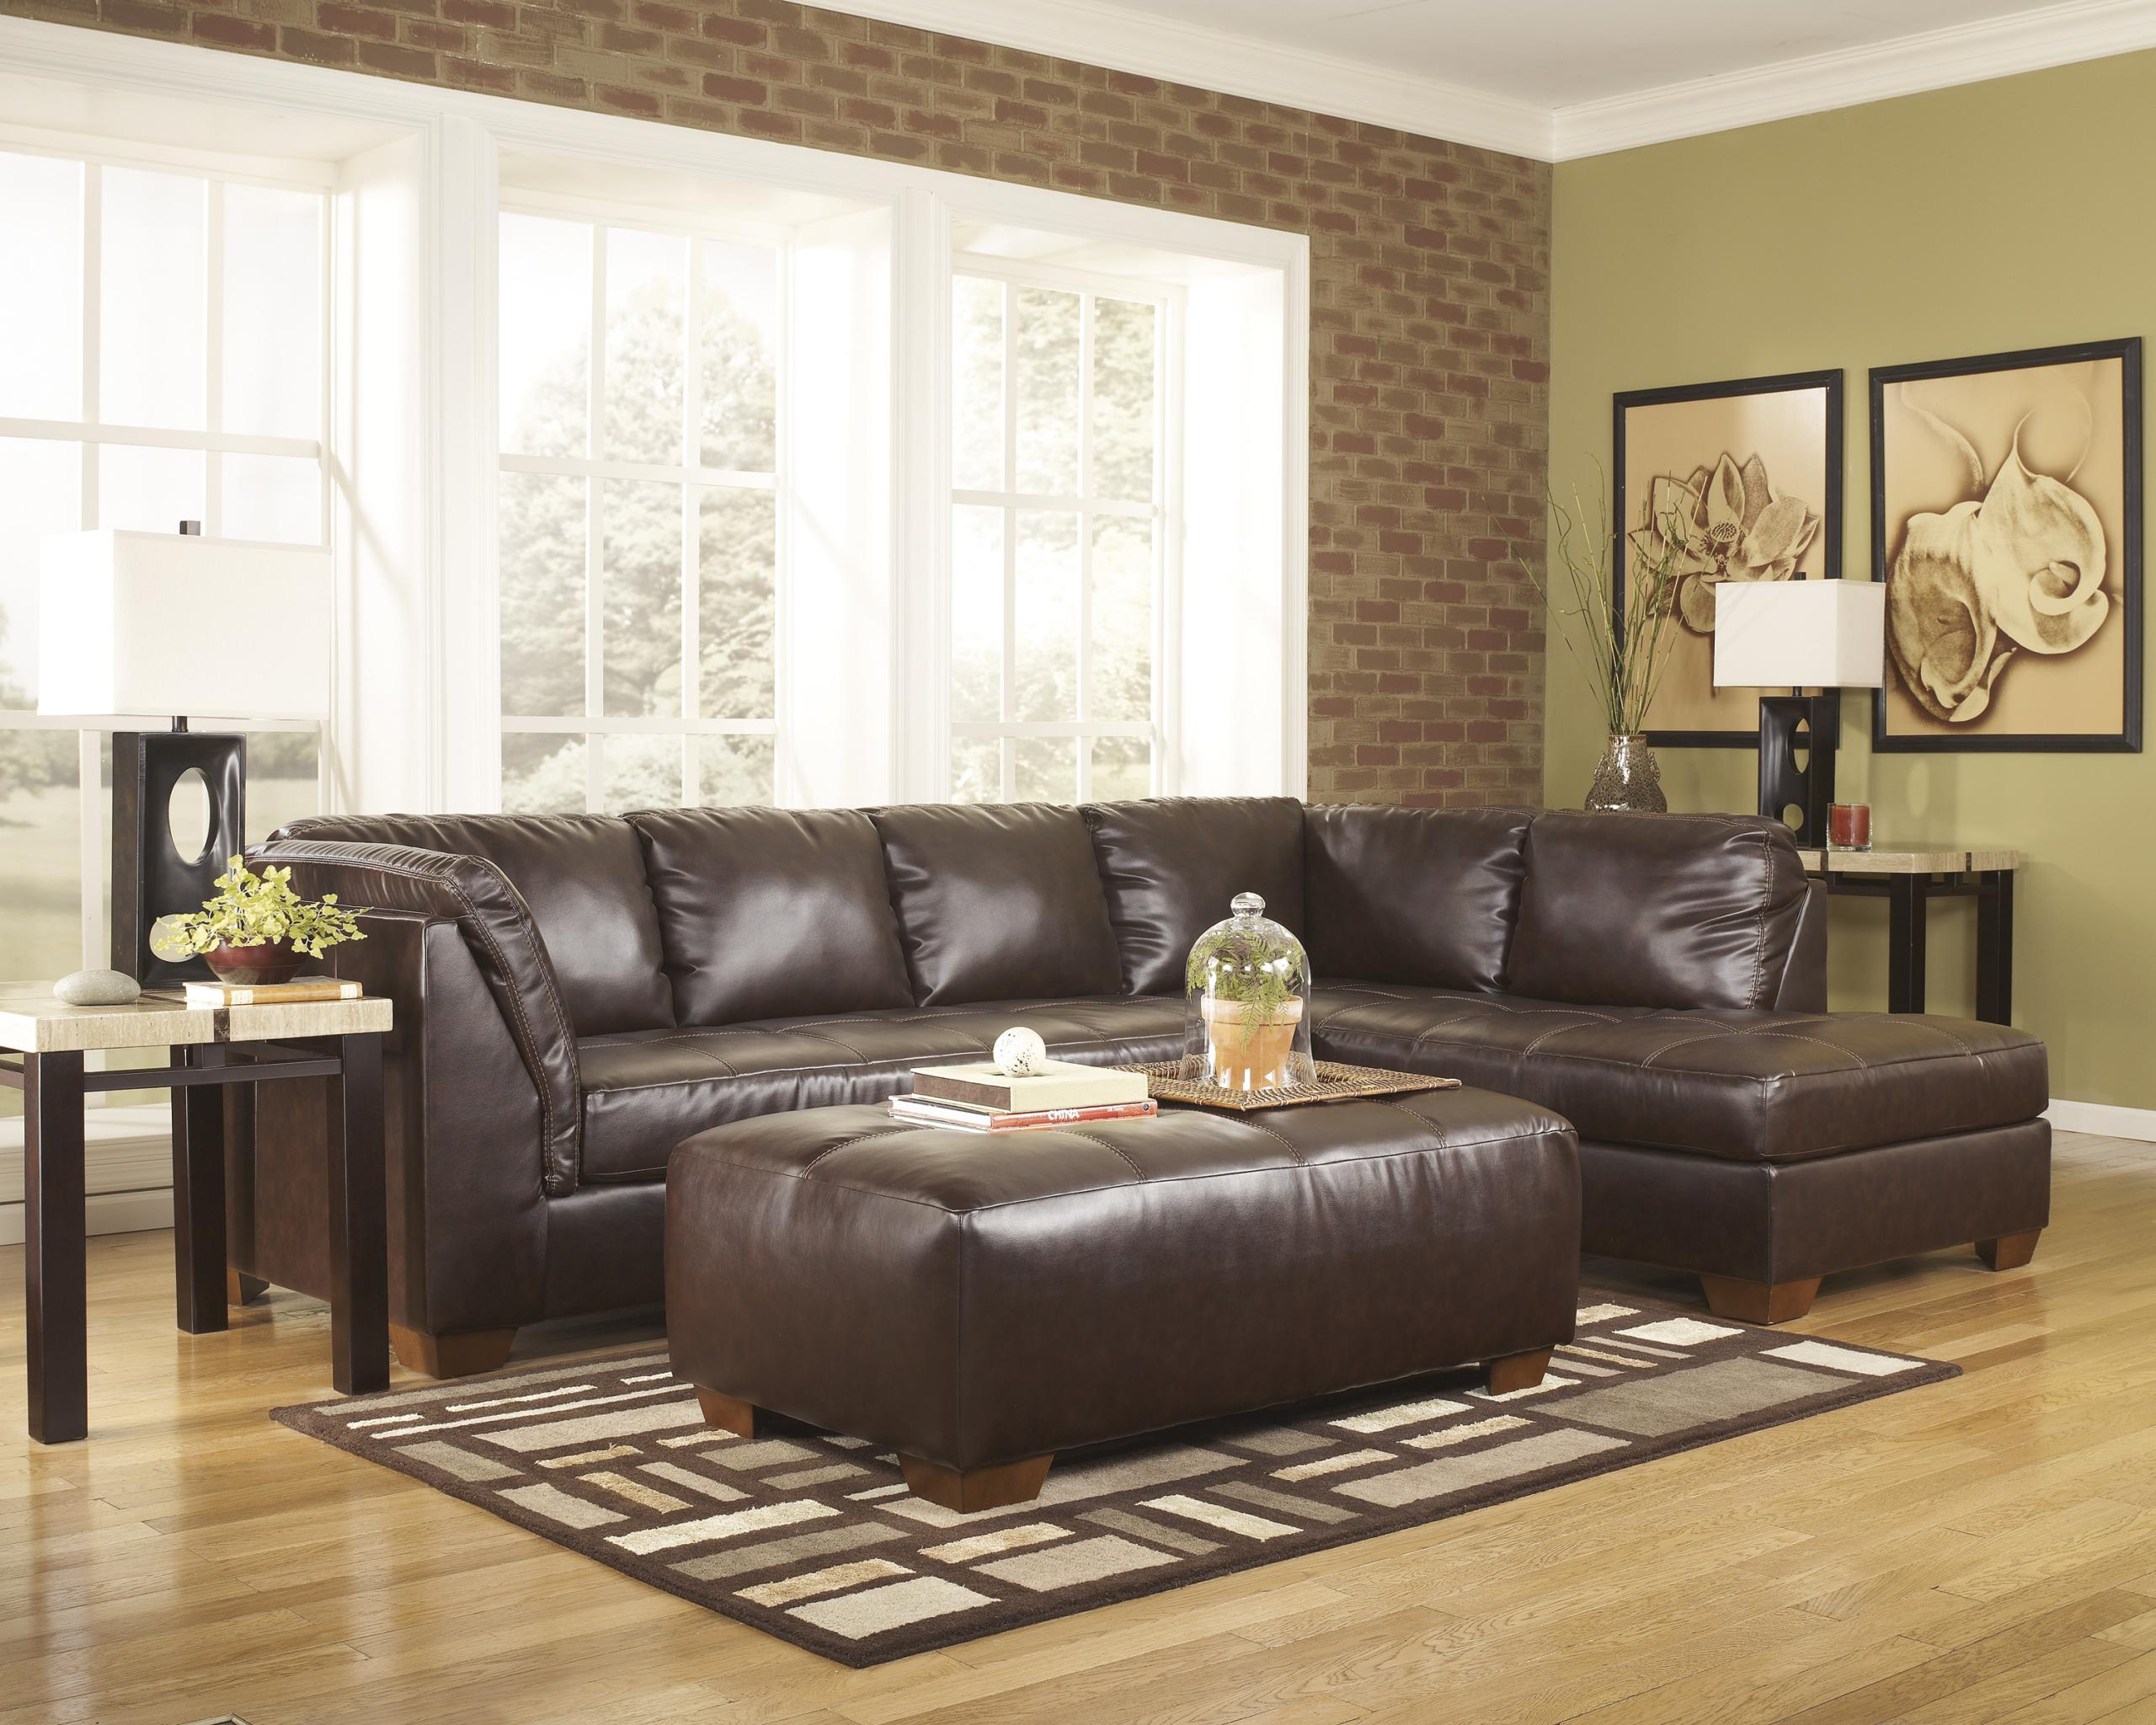 Sectional Living Room Set Abden Furniture Corp Sectionals